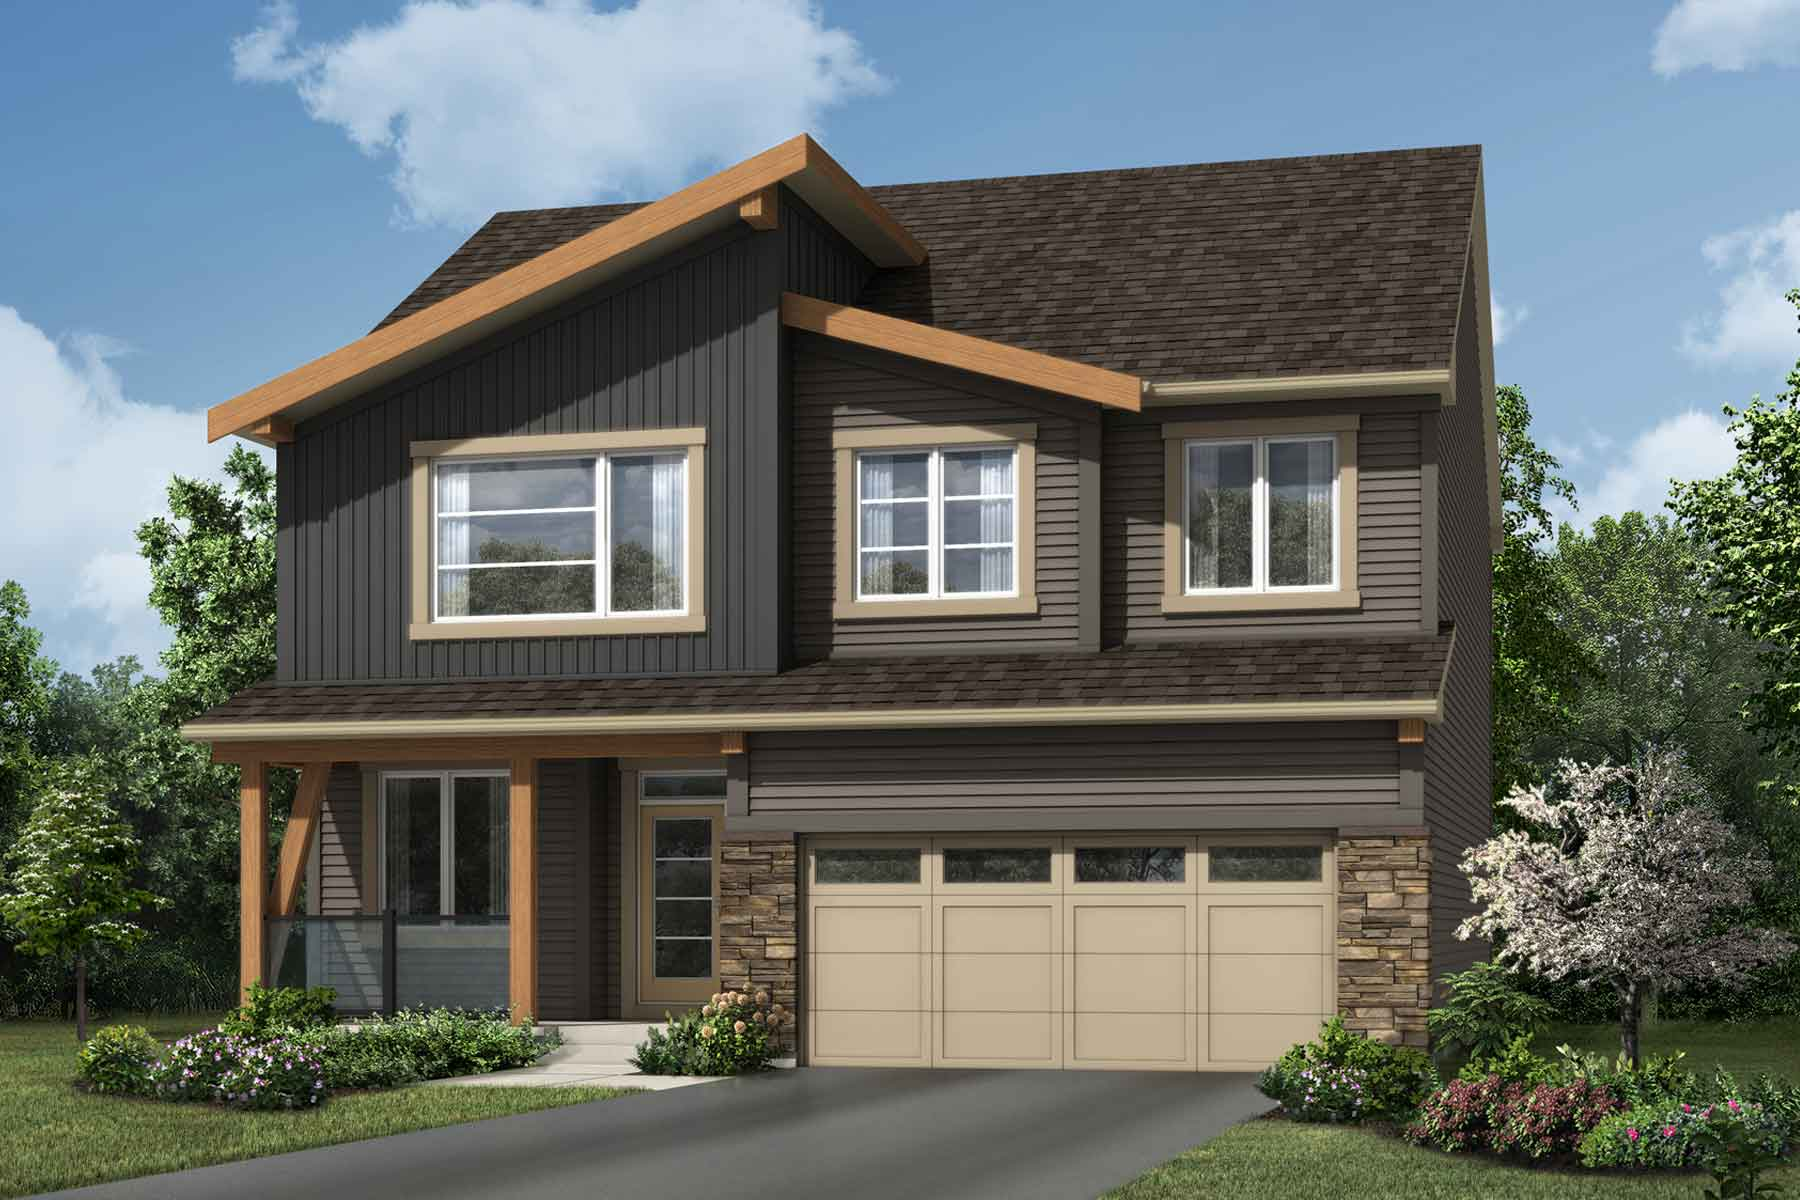 Smythe Plan elevationmountaincontemporary_carrington_smythe at Carrington in Calgary Alberta by Mattamy Homes